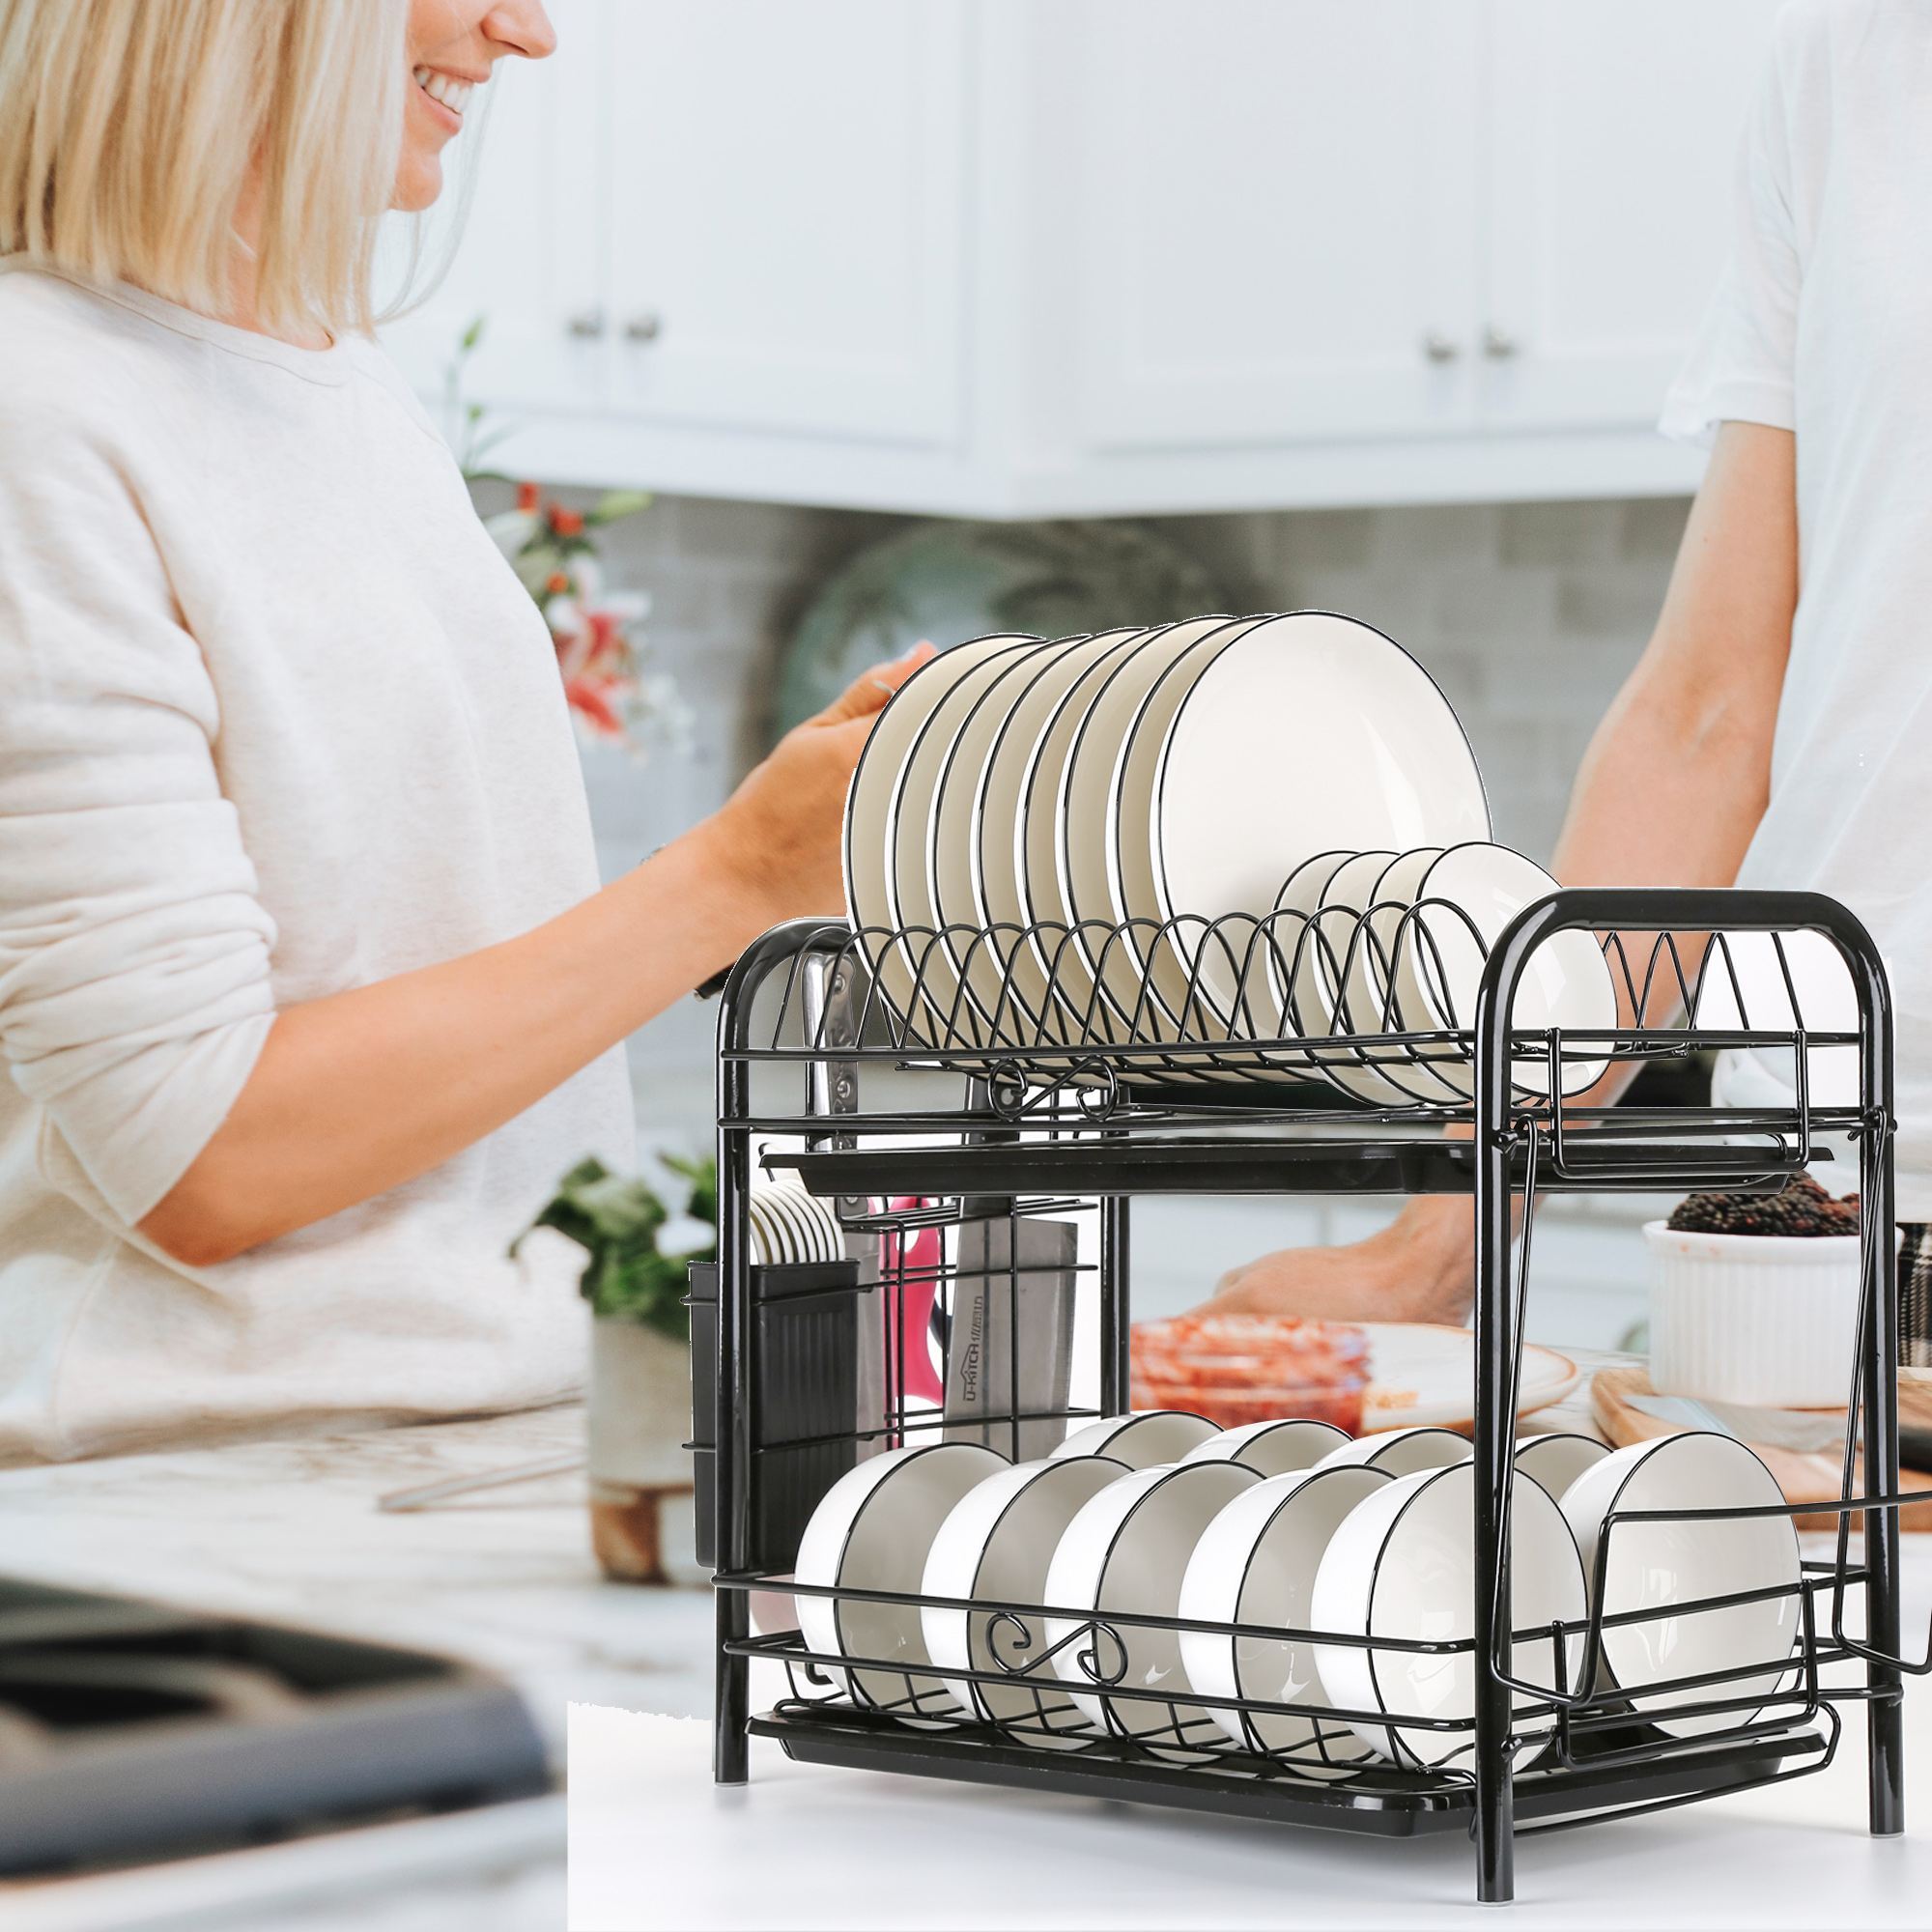 2//3 Tier Dish Plate Cup Drying Rack Organizer Drainer Storage Holder For Kitchen